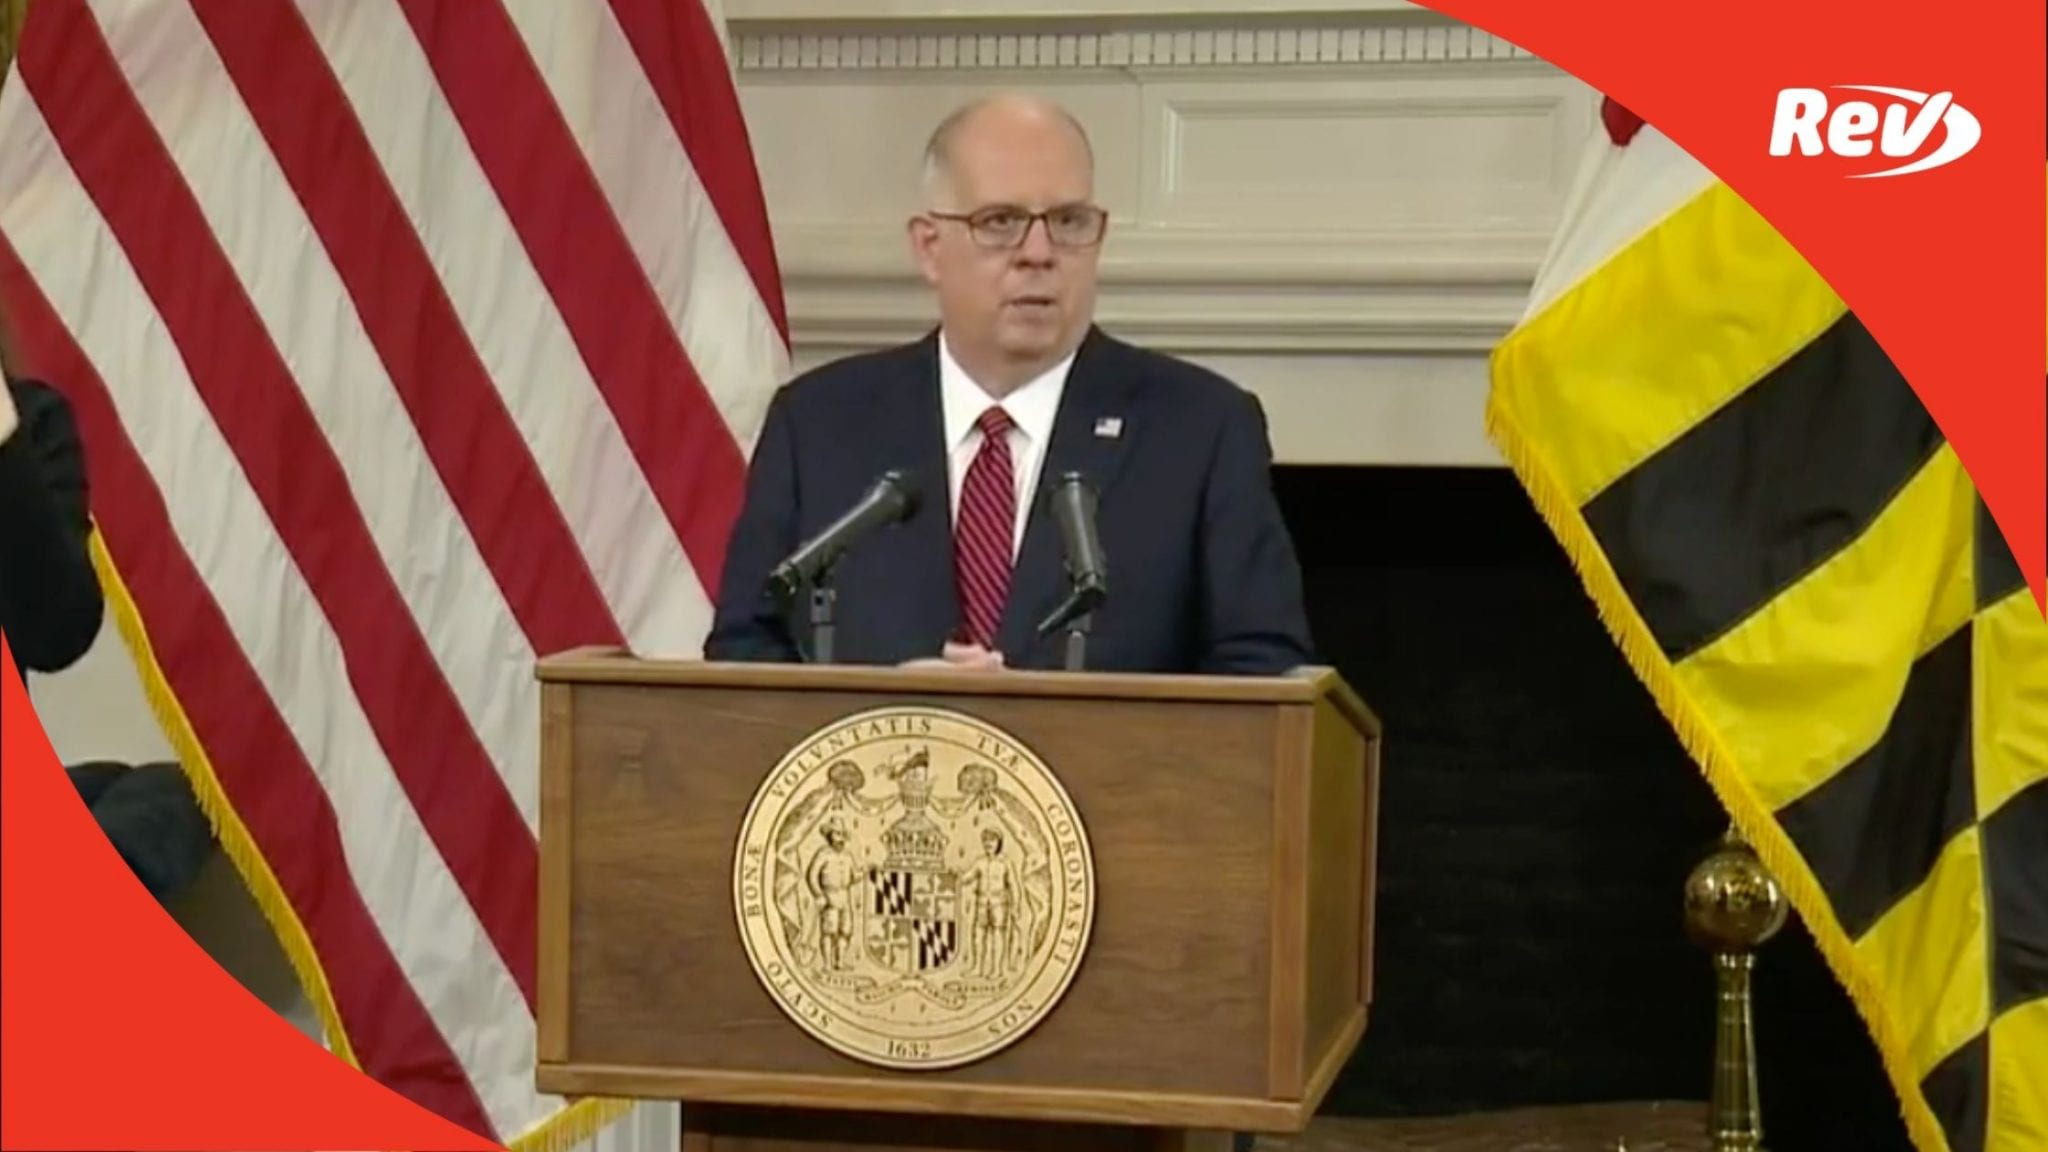 MD Governor Larry Hogan COVID Press Conference Transcript February 23